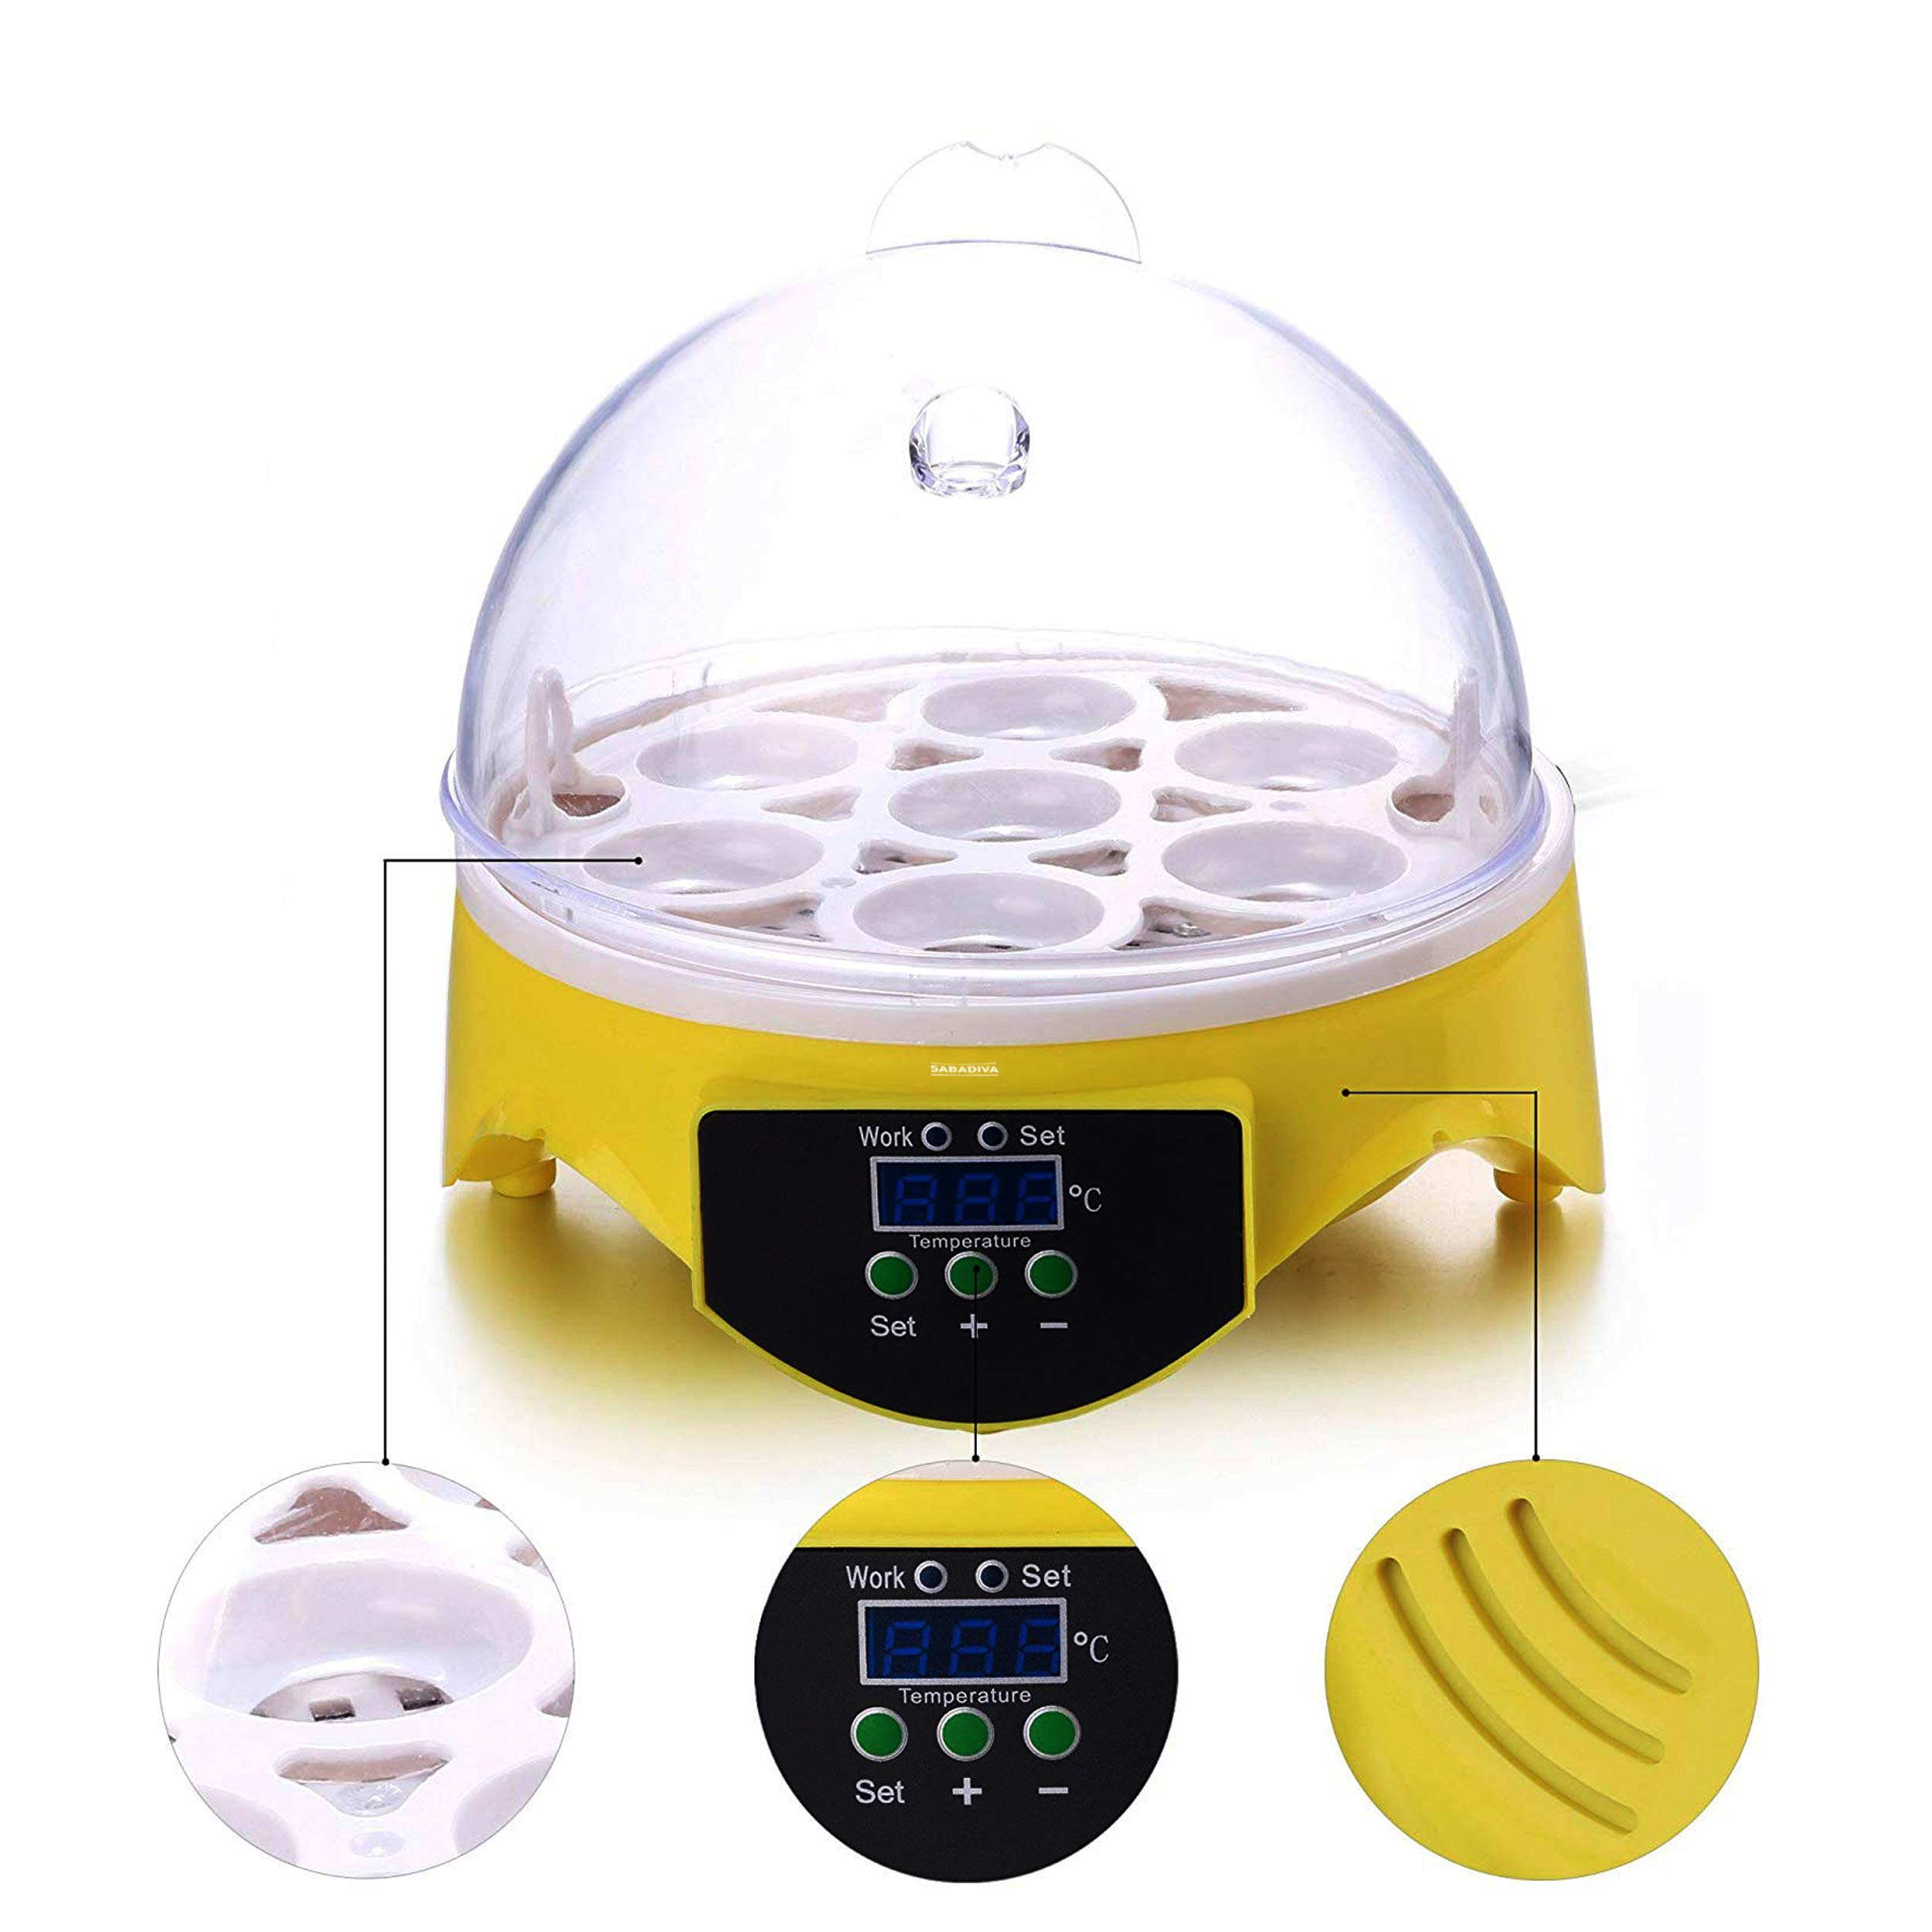 SABADIVA Egg Incubators for Hatching Eggs with Automatic Turner |7 Egg Incubator Hatcher Automatic I by SABADIVA